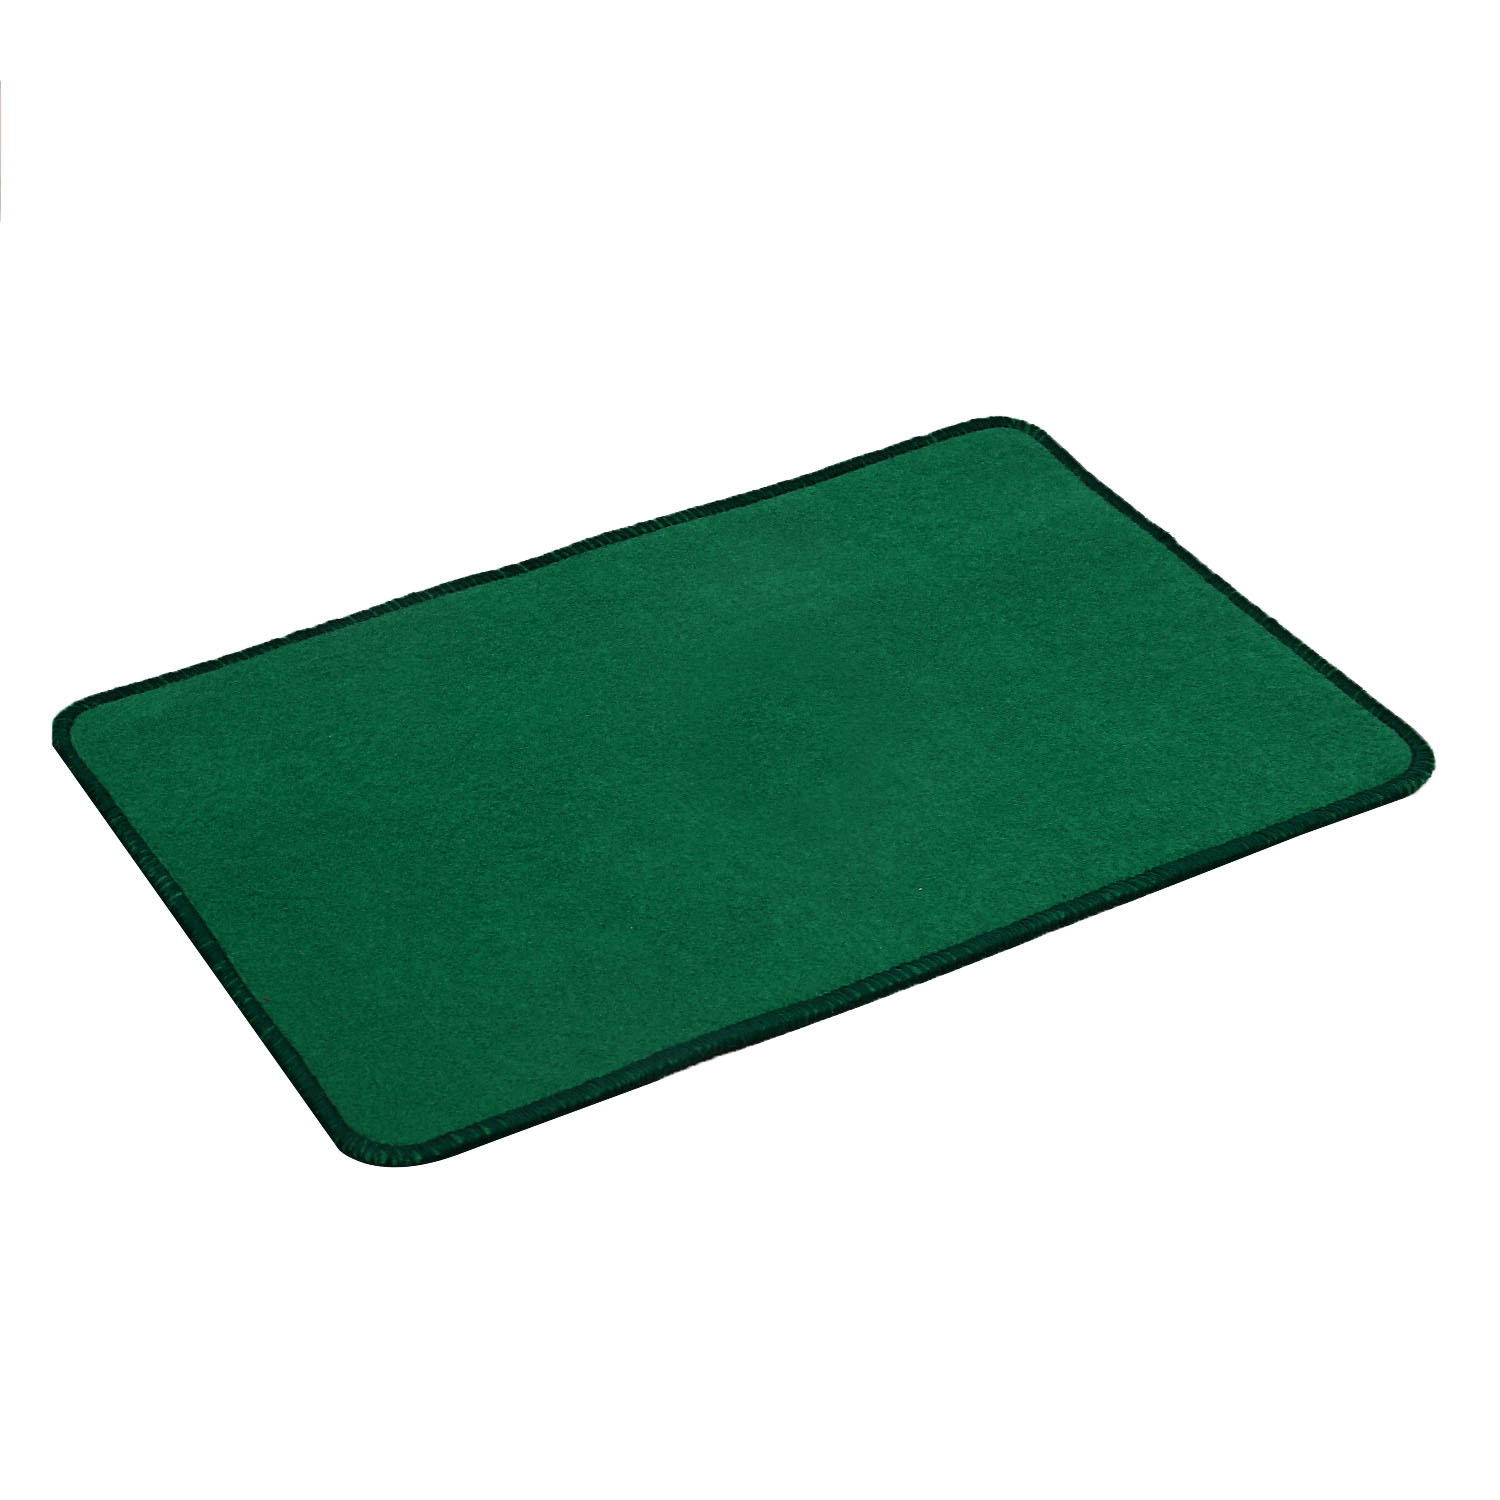 "Kuber Industries Microfiber Anti Slip 6 Pieces Bath Mat 22""x14"", Green"